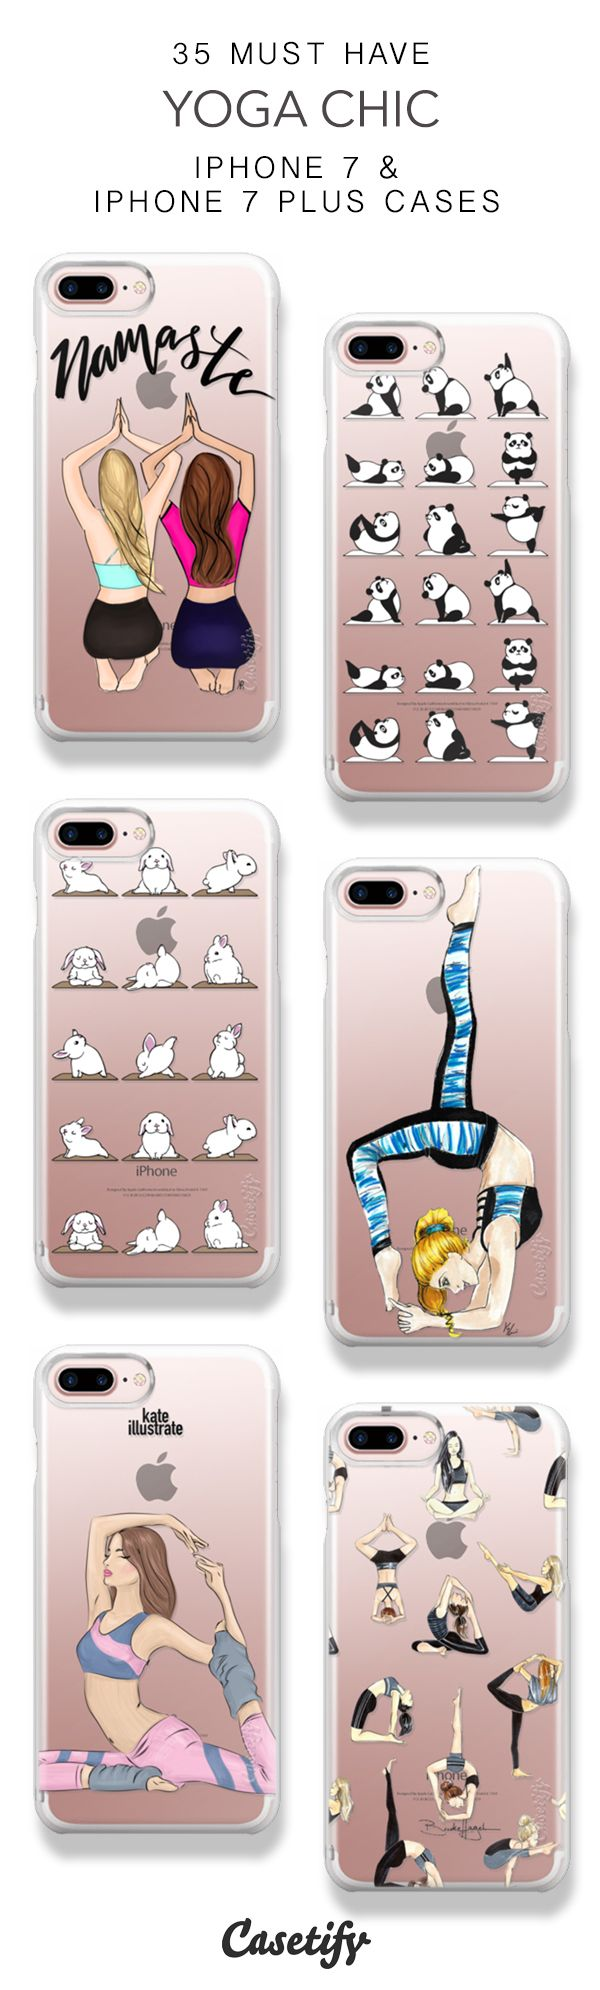 35 Must Have Yoga Chic Protective iPhone 7 Cases and iPhone 7 Plus Cases. More Sport iPhone case here > www.casetify.com/... Cell Phone, Cases & Covers... http://www.ebay.com/sch/i.html?_from=R40&_trksid=p4712.m570.l1313.TR10.TRC0.A0.H1.Xcell+phone+cases+and+covers.TRS0&_nkw=cell+phone+cases+and+covers&_sacat=0